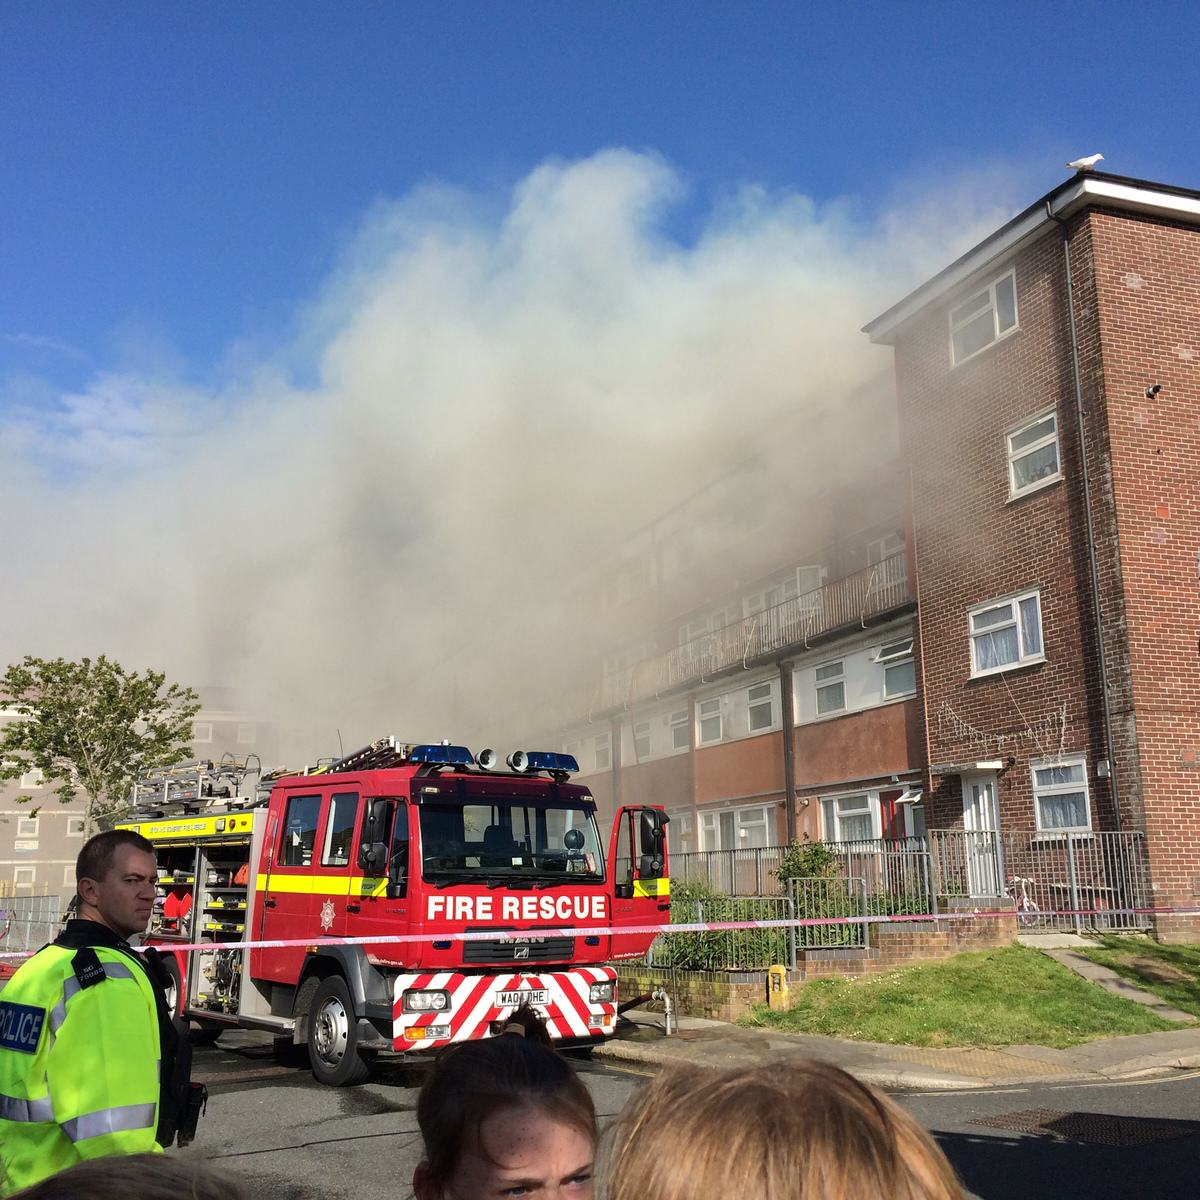 Boy Tries To Recreate Science Experiment, Burns Down Block Of Flats Causing £3m Damage UNILAD SWNS FLAT FIRE 0323857